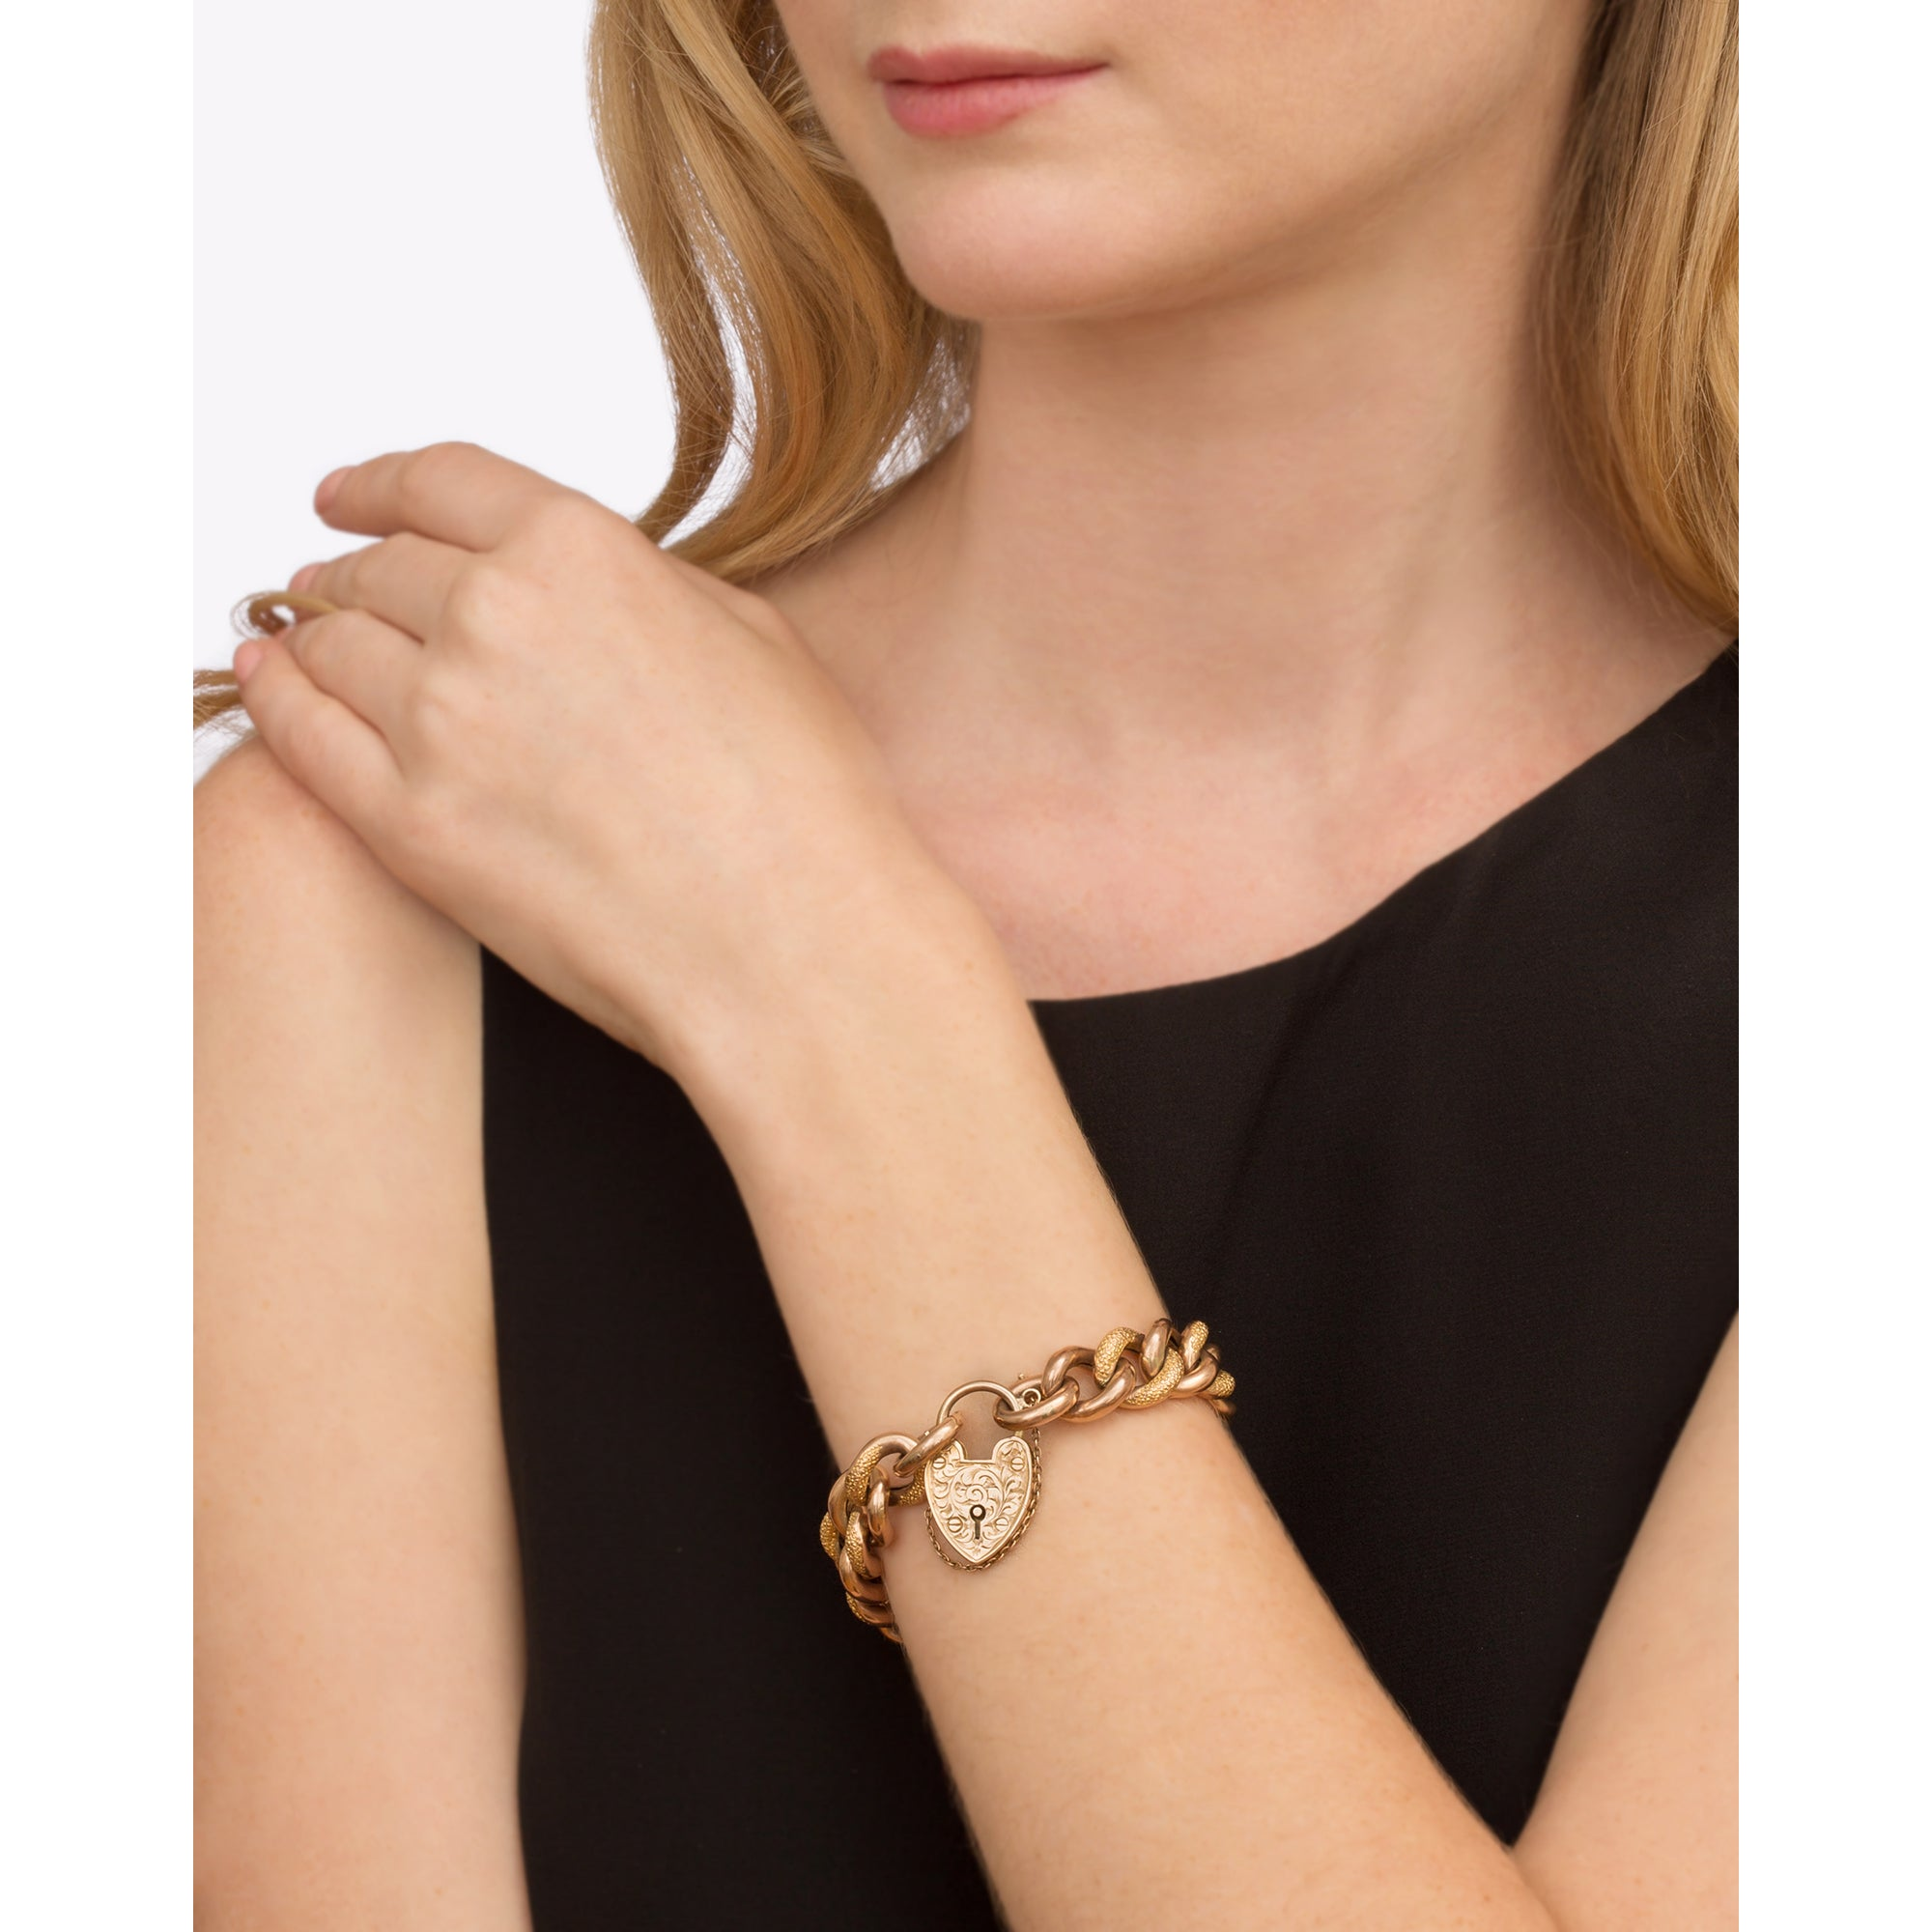 Gold Curb Link Bracelet from Broken English Jewelry